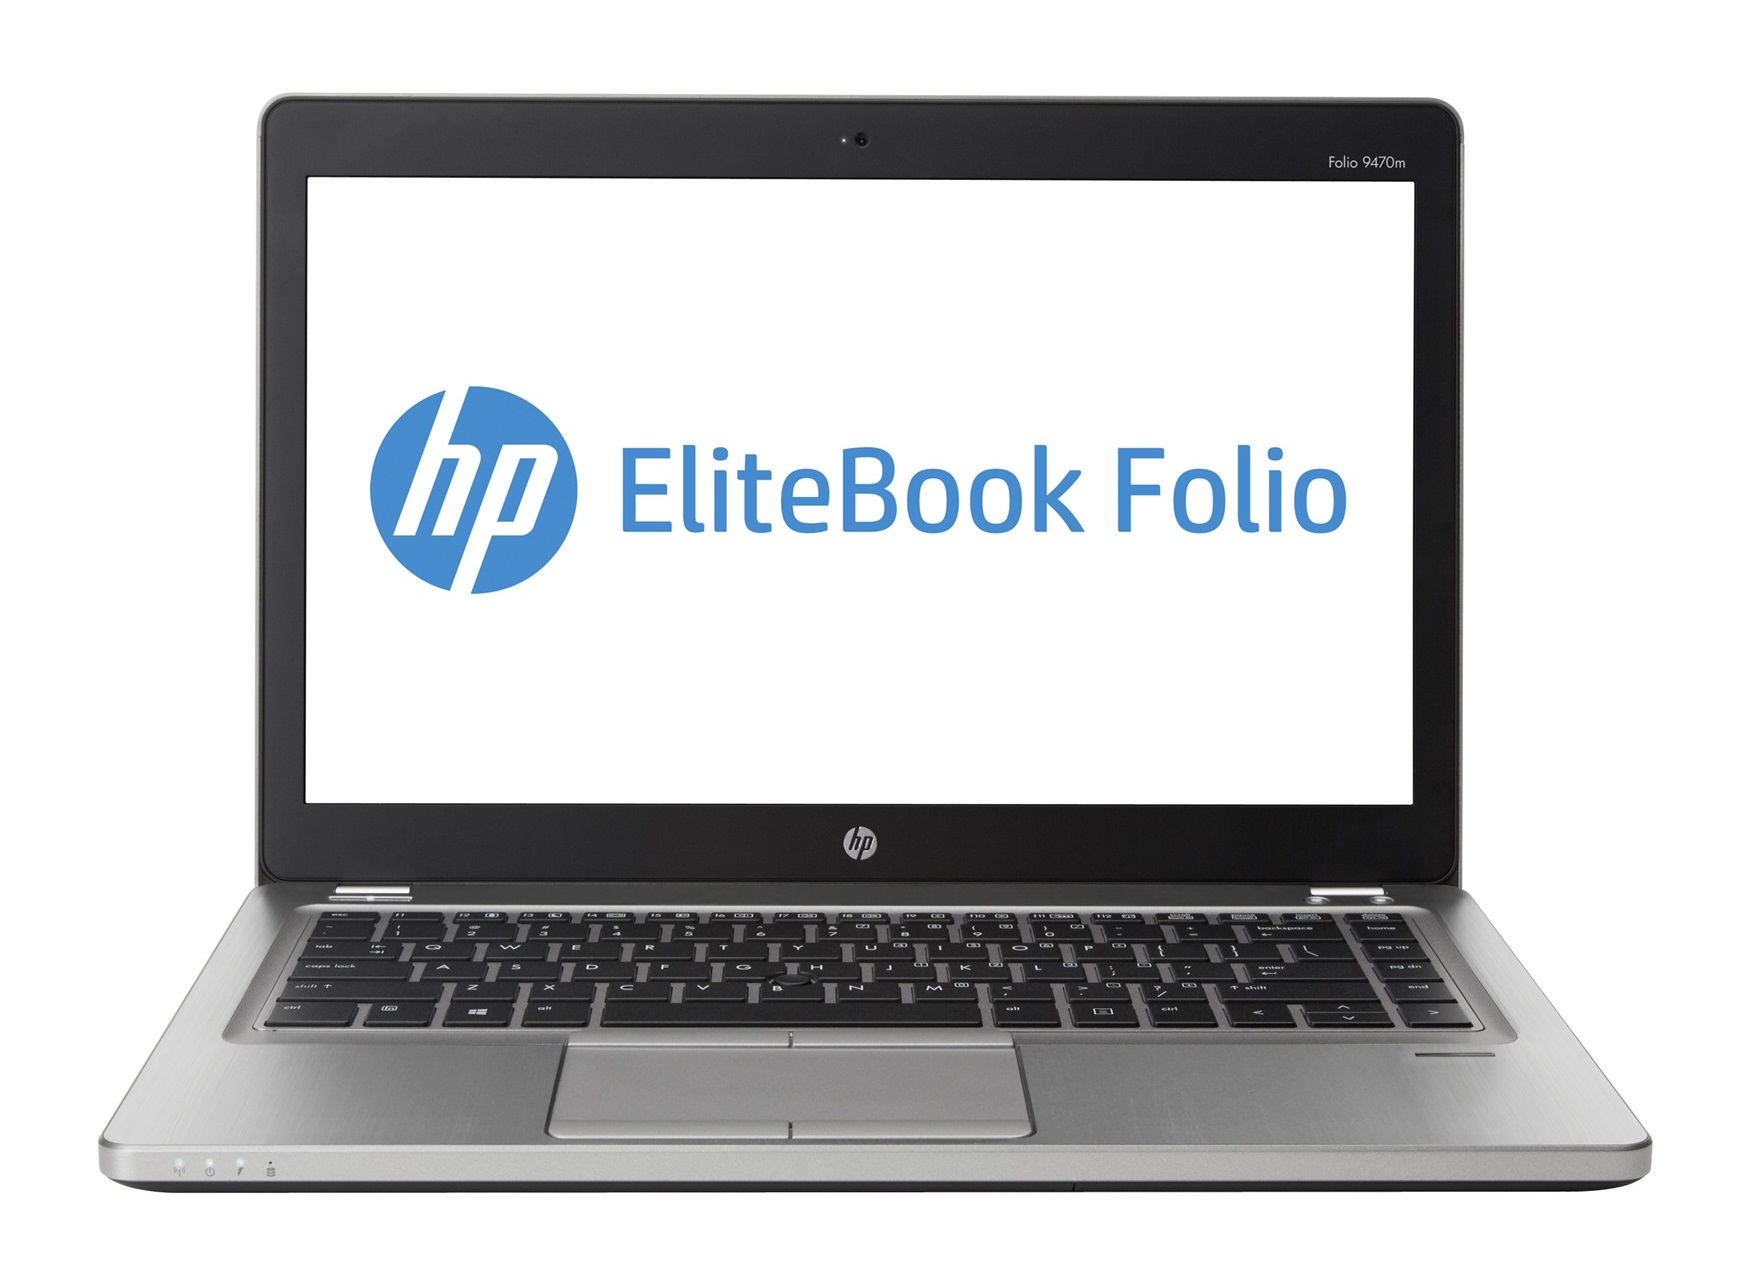 download windows 8 sound driver for hp elitebook.